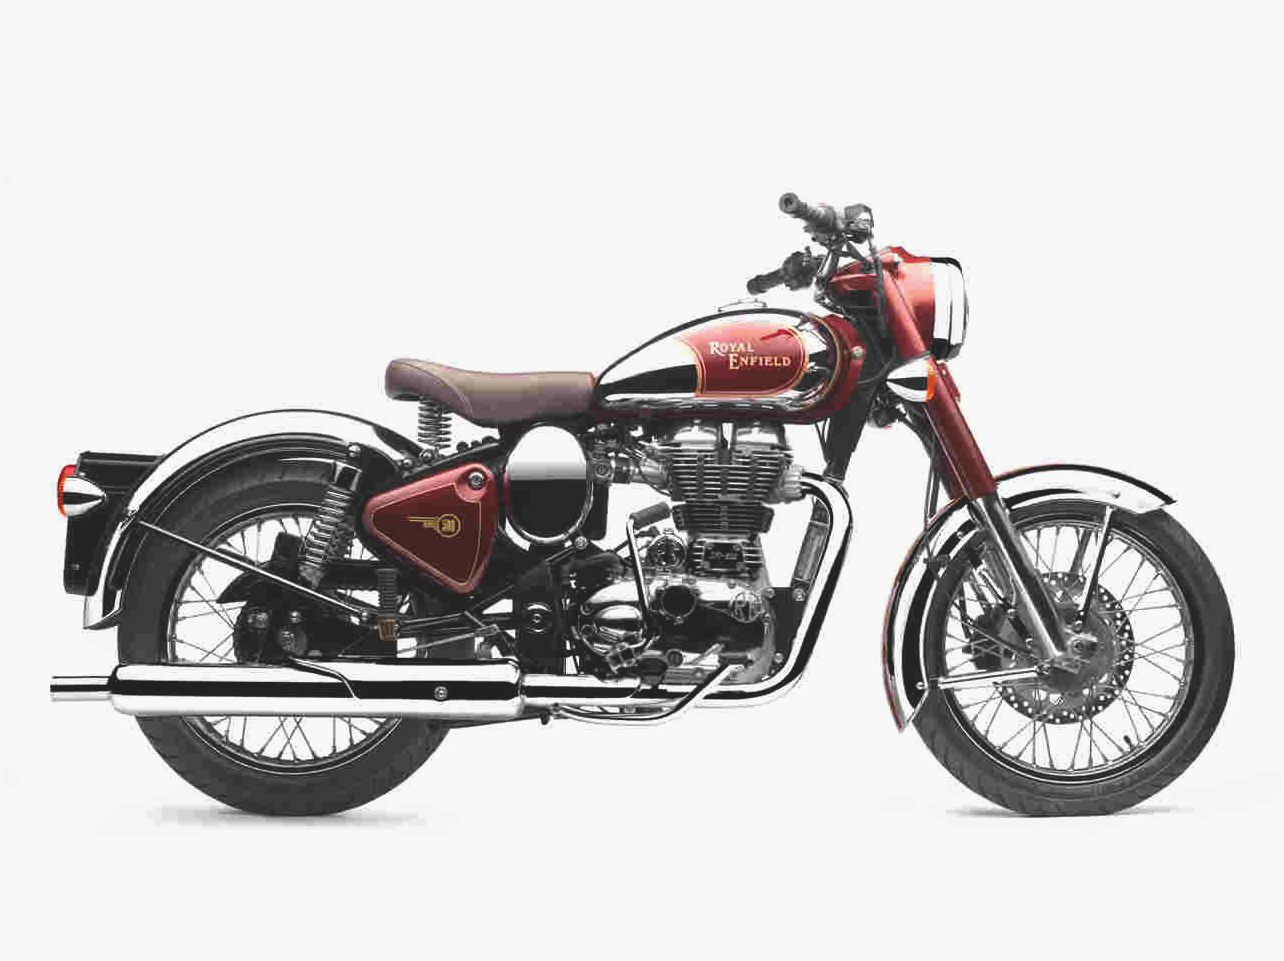 Royal enfield bullett photo - 8